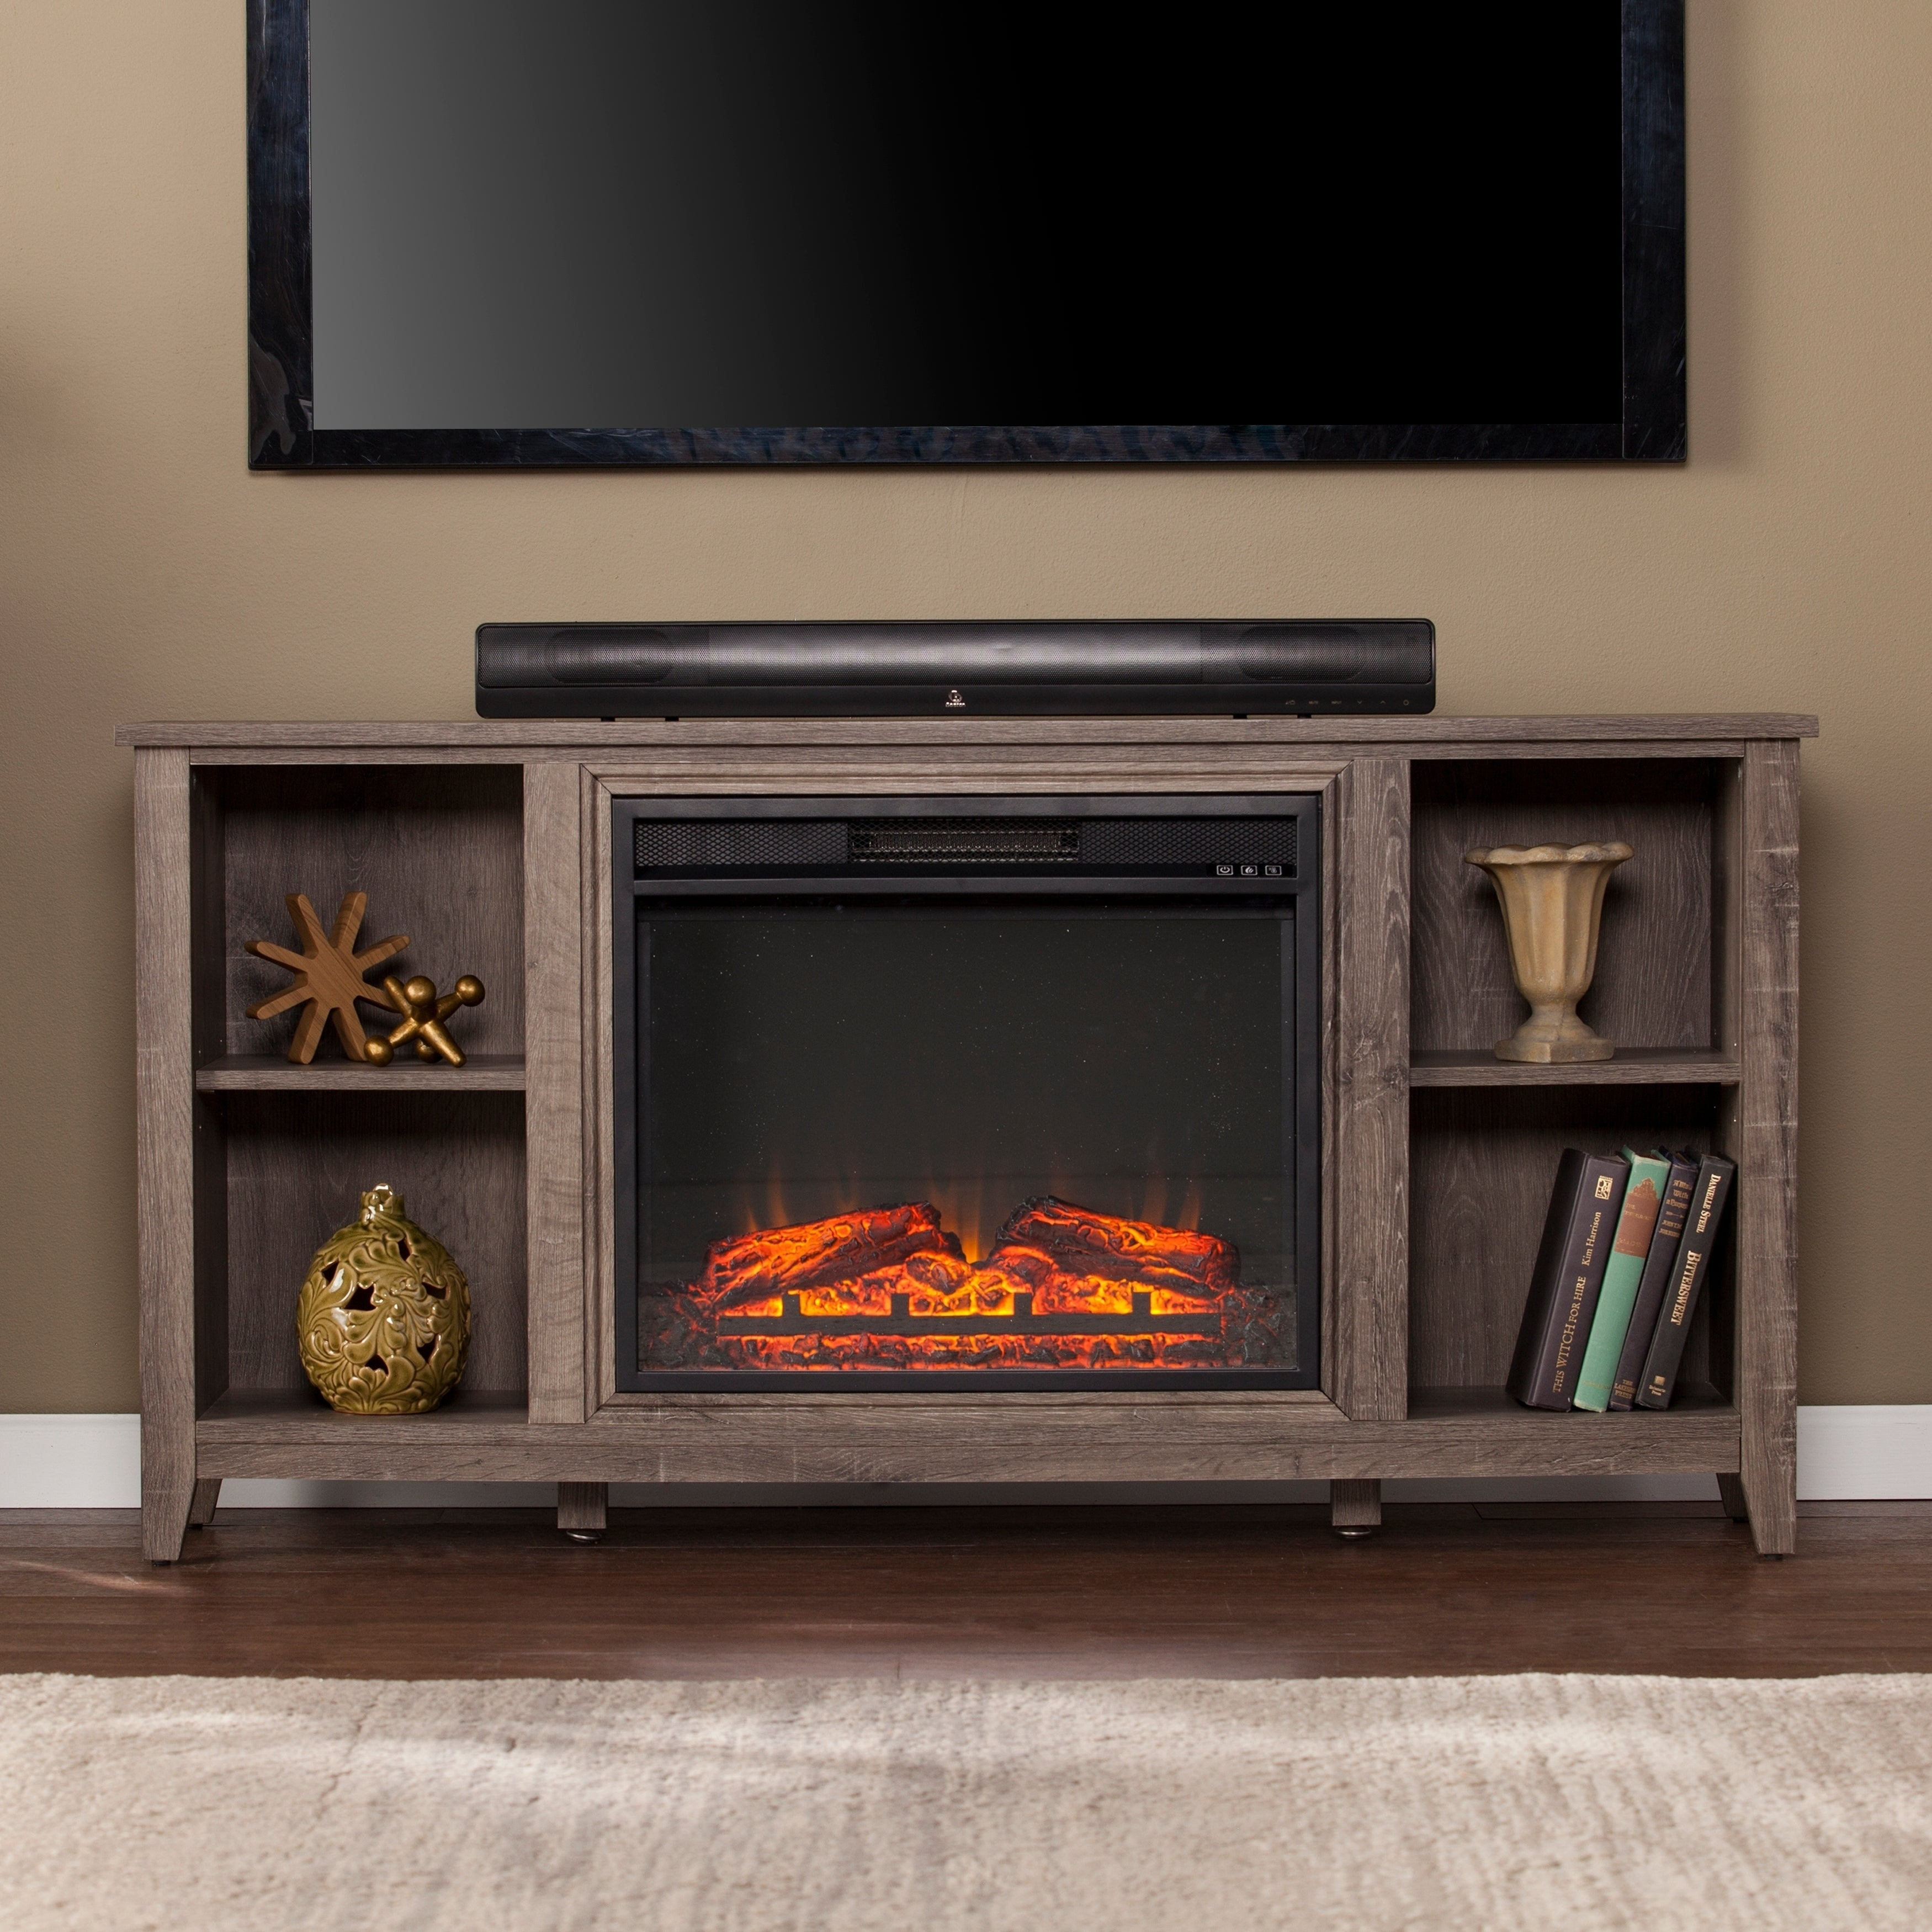 Phenomenal Porch Den Haveford Mocha Gray Electric Fireplace Tv Stand Interior Design Ideas Gentotthenellocom